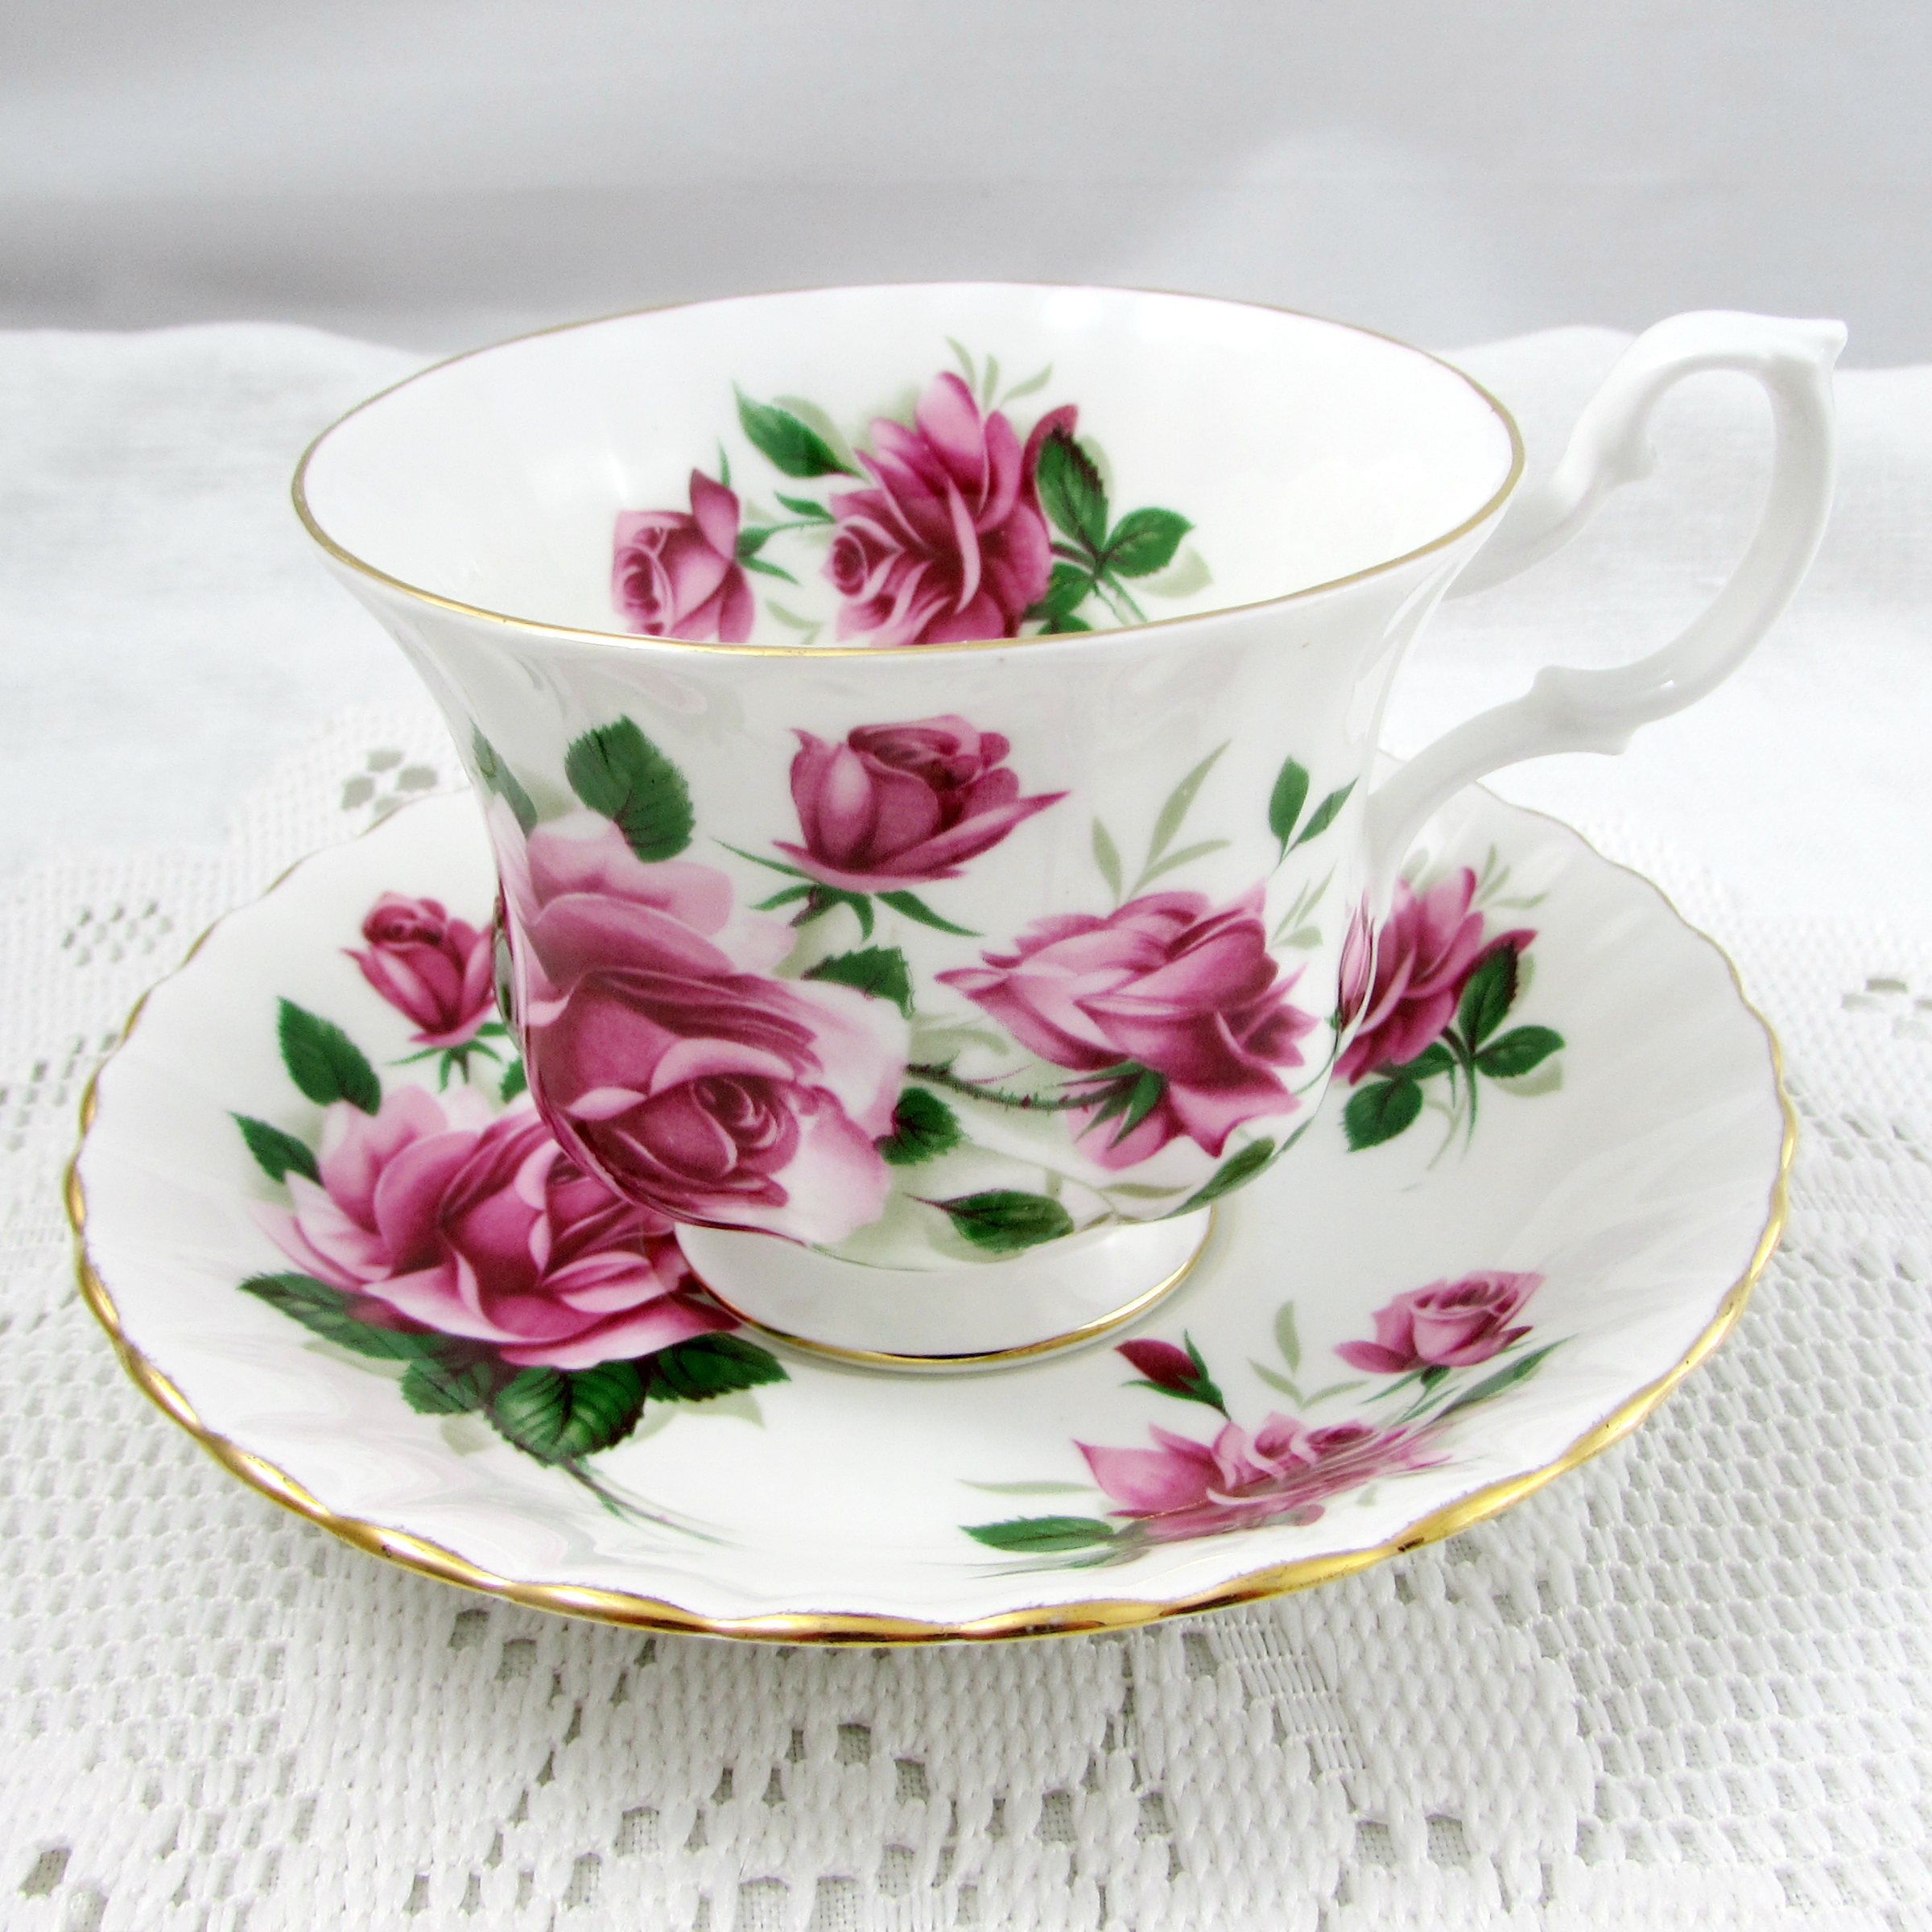 royal albert tea cup and saucer with pink roses vintage royal albert bone china